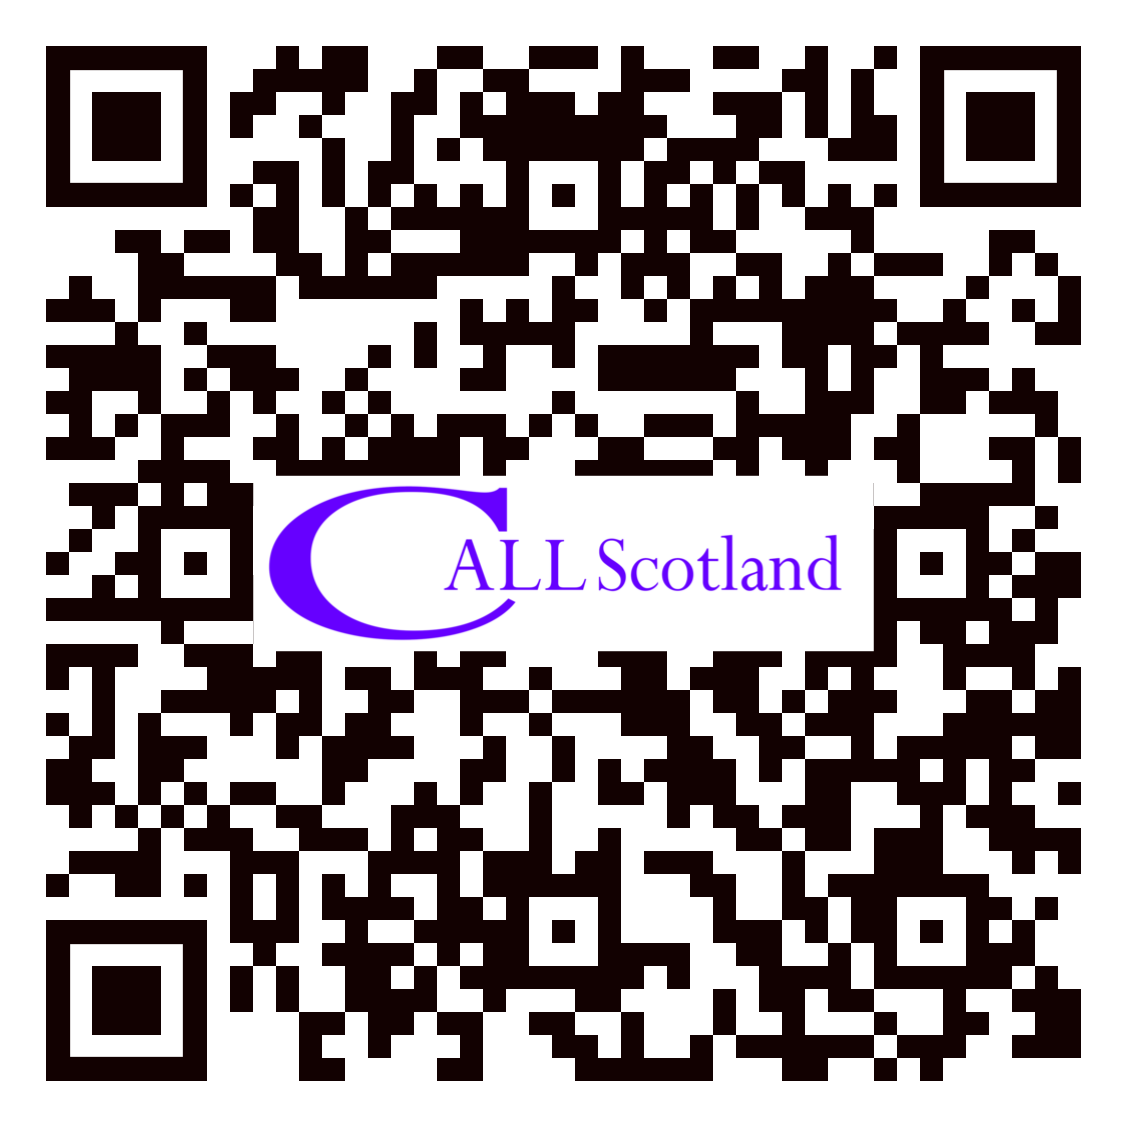 QR code for learning module